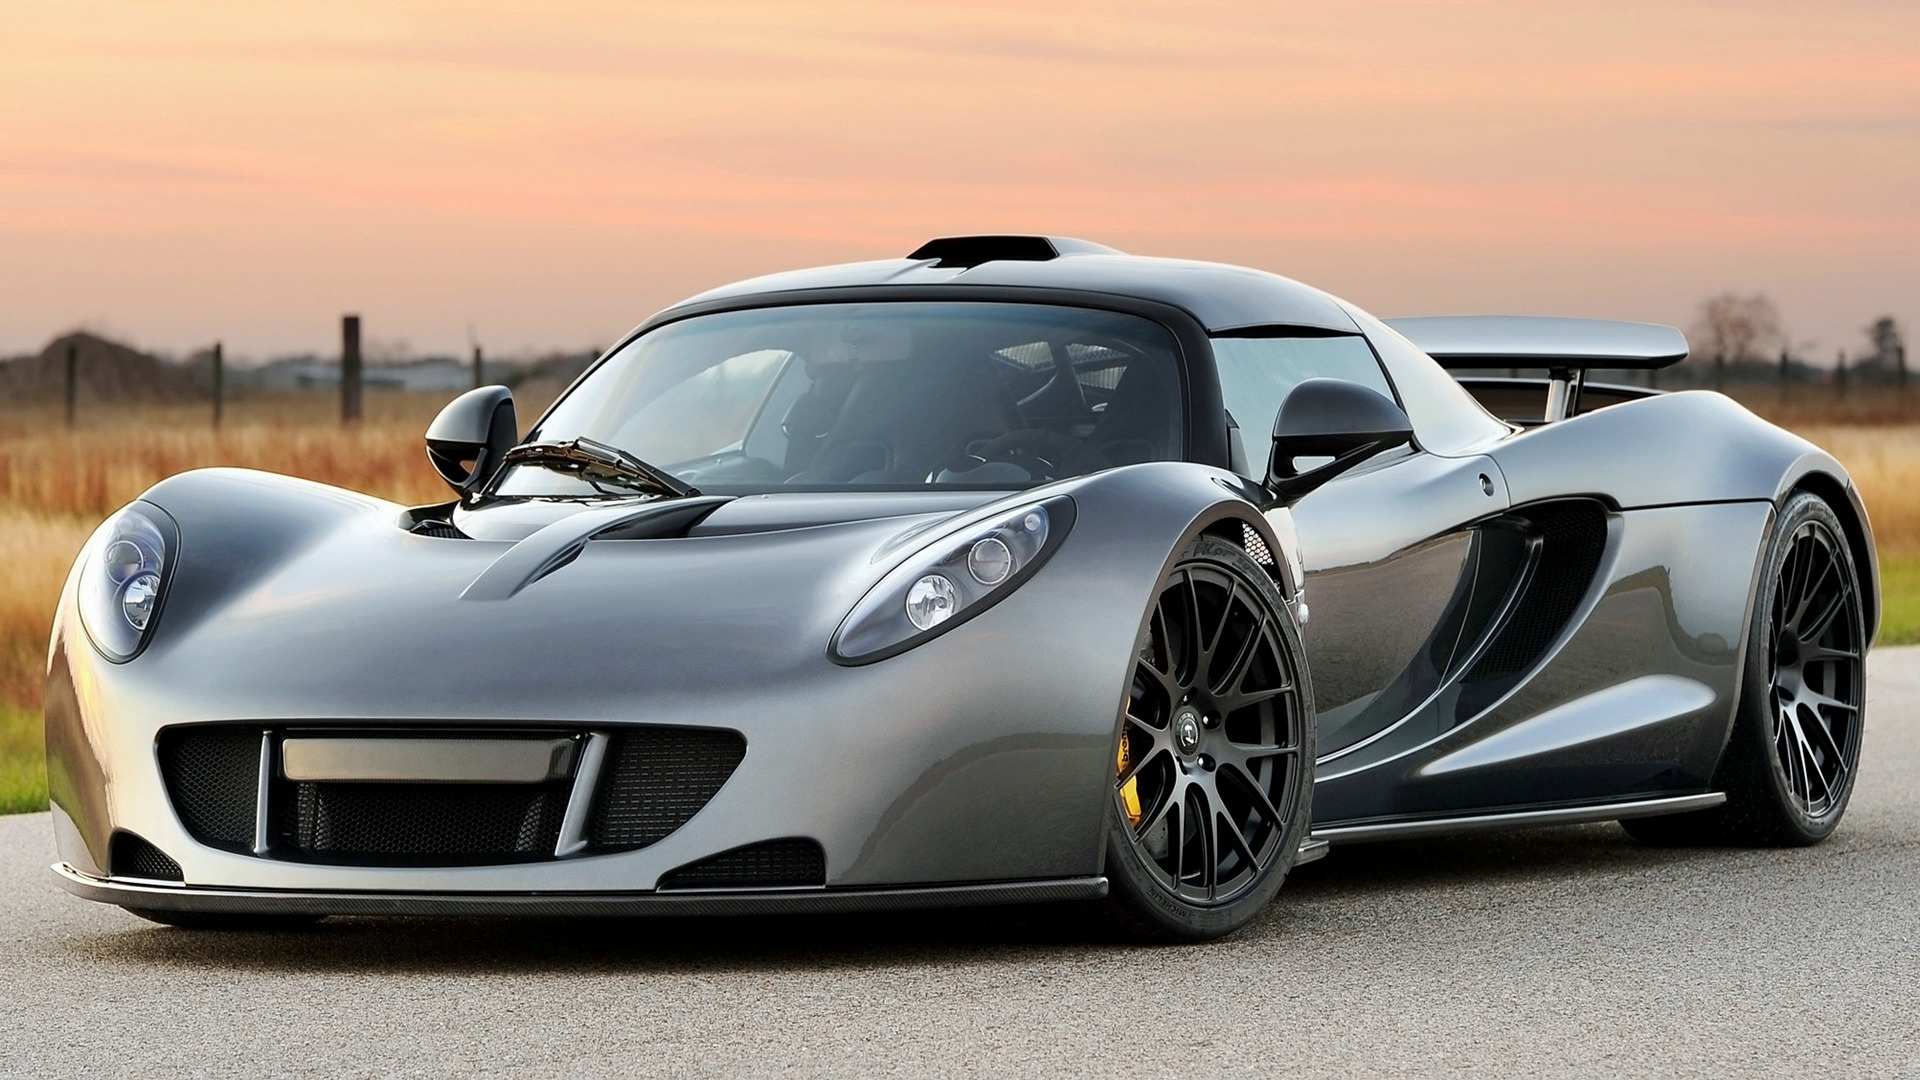 2013 Hennessey Venom Gt World Speed Record Car